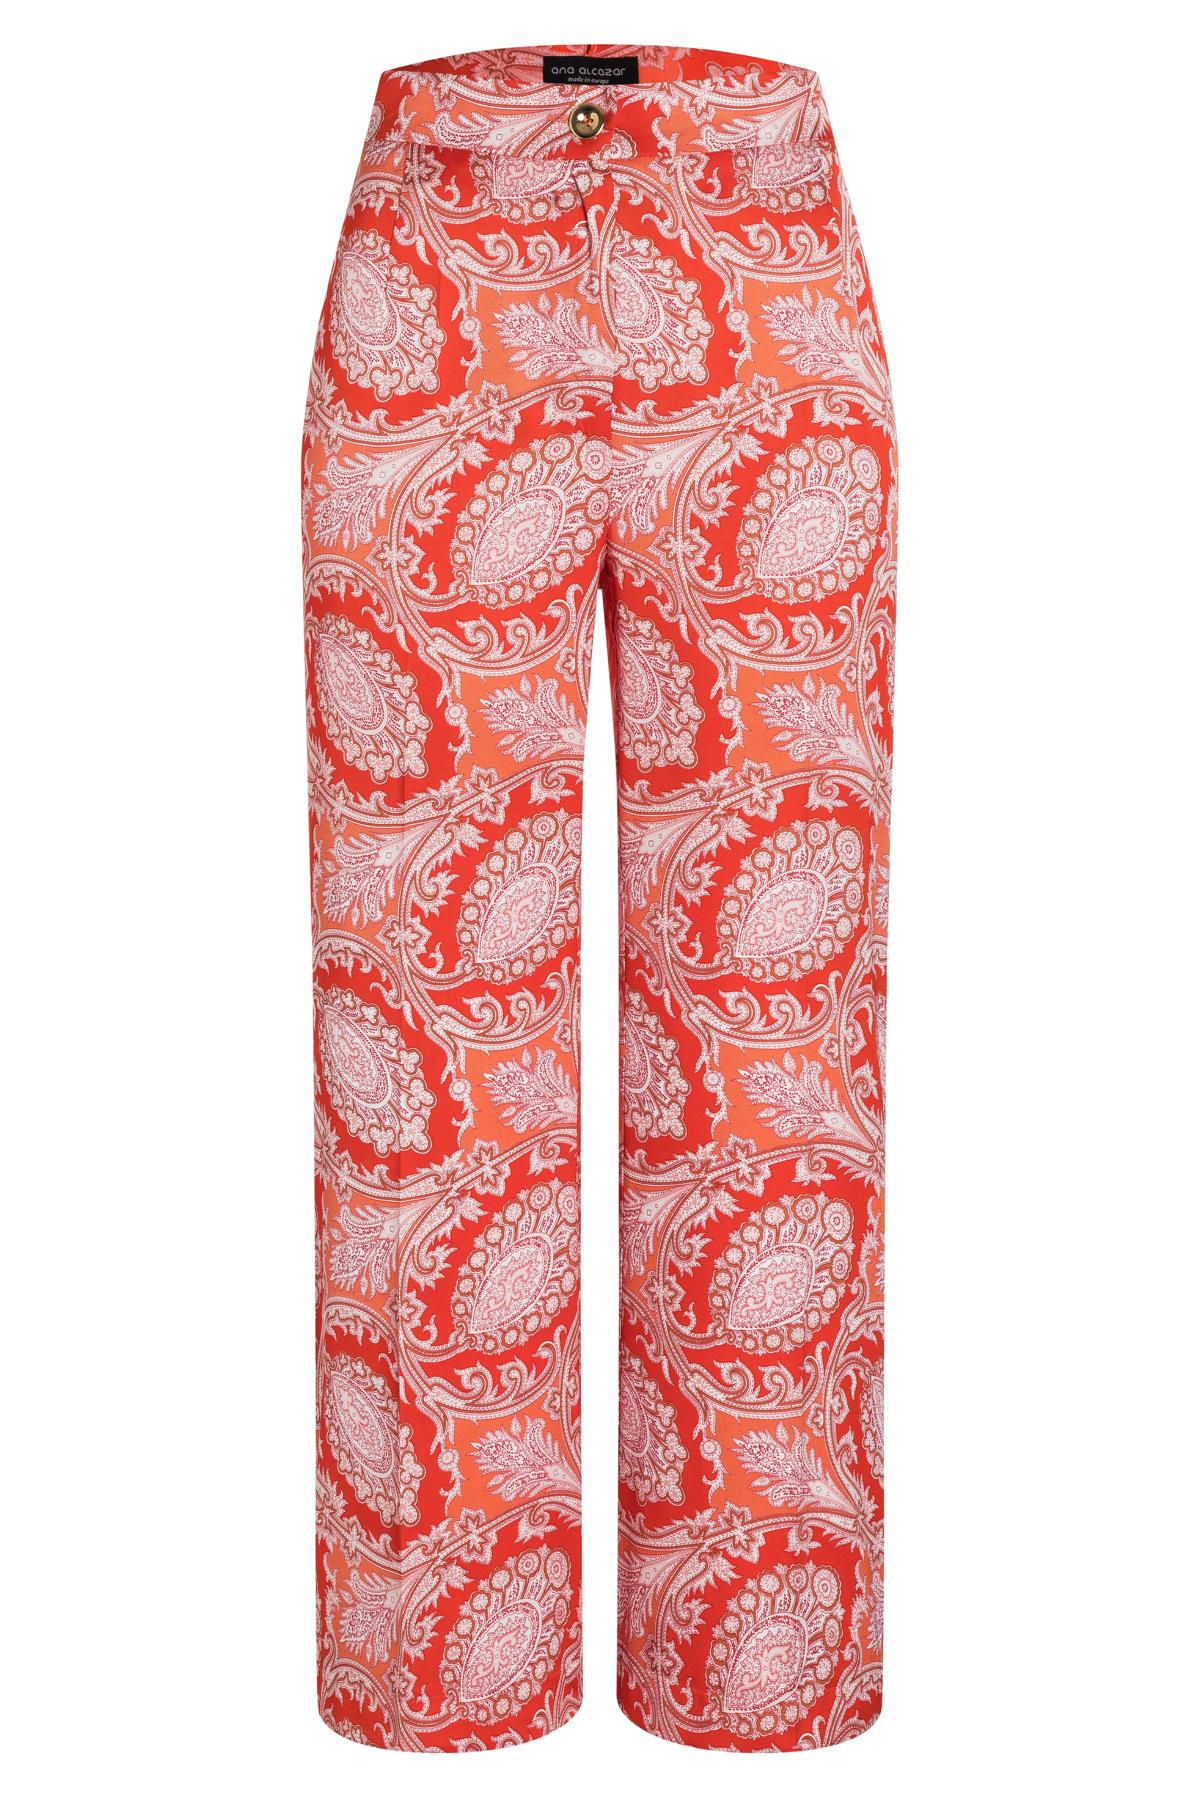 Ana Alcazar Cropped Pant Tefris Red